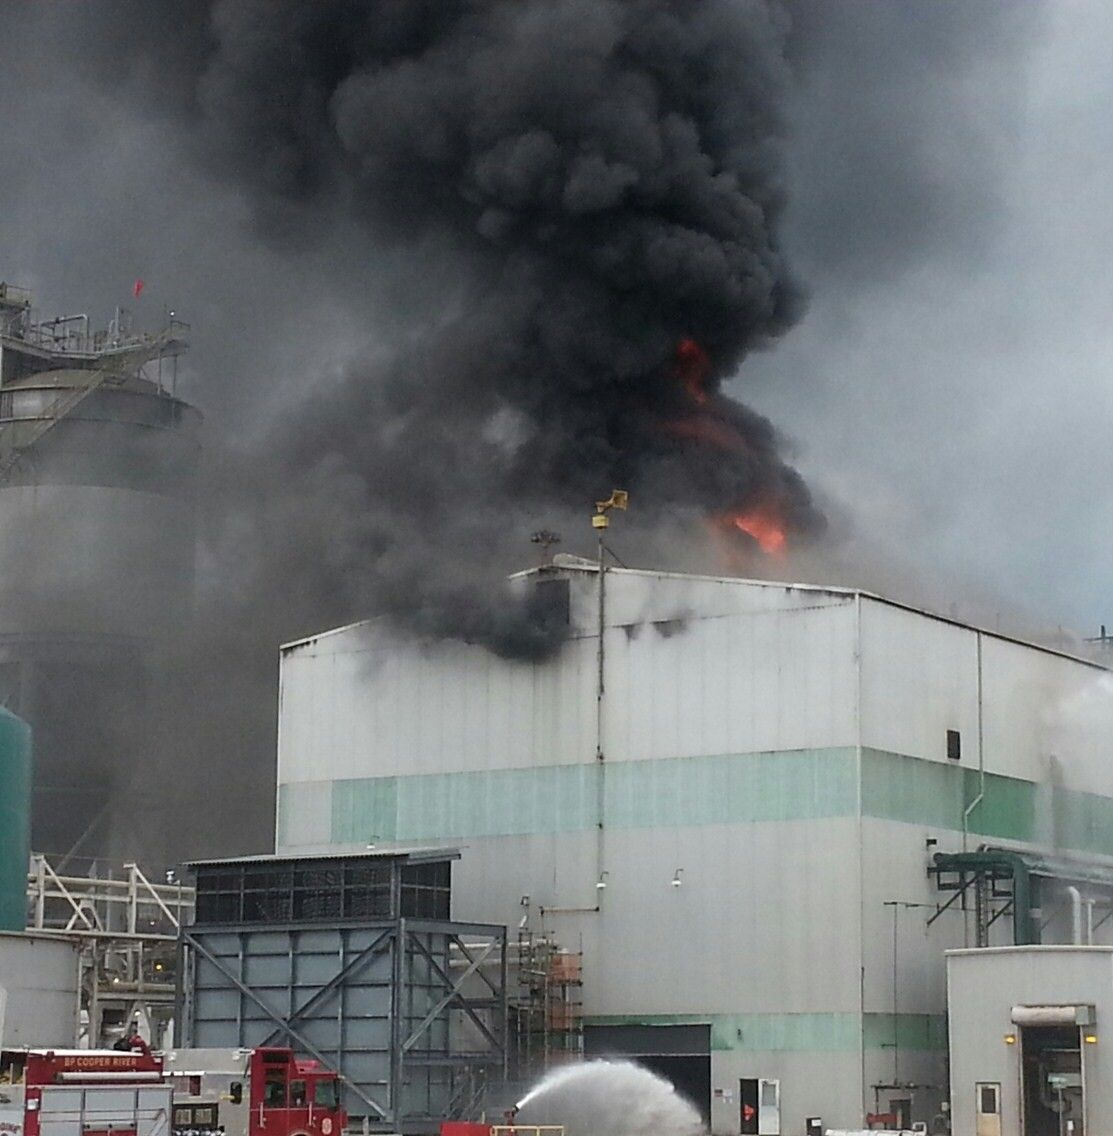 Fire destroys $25M building at BP Amoco in Cainhoy